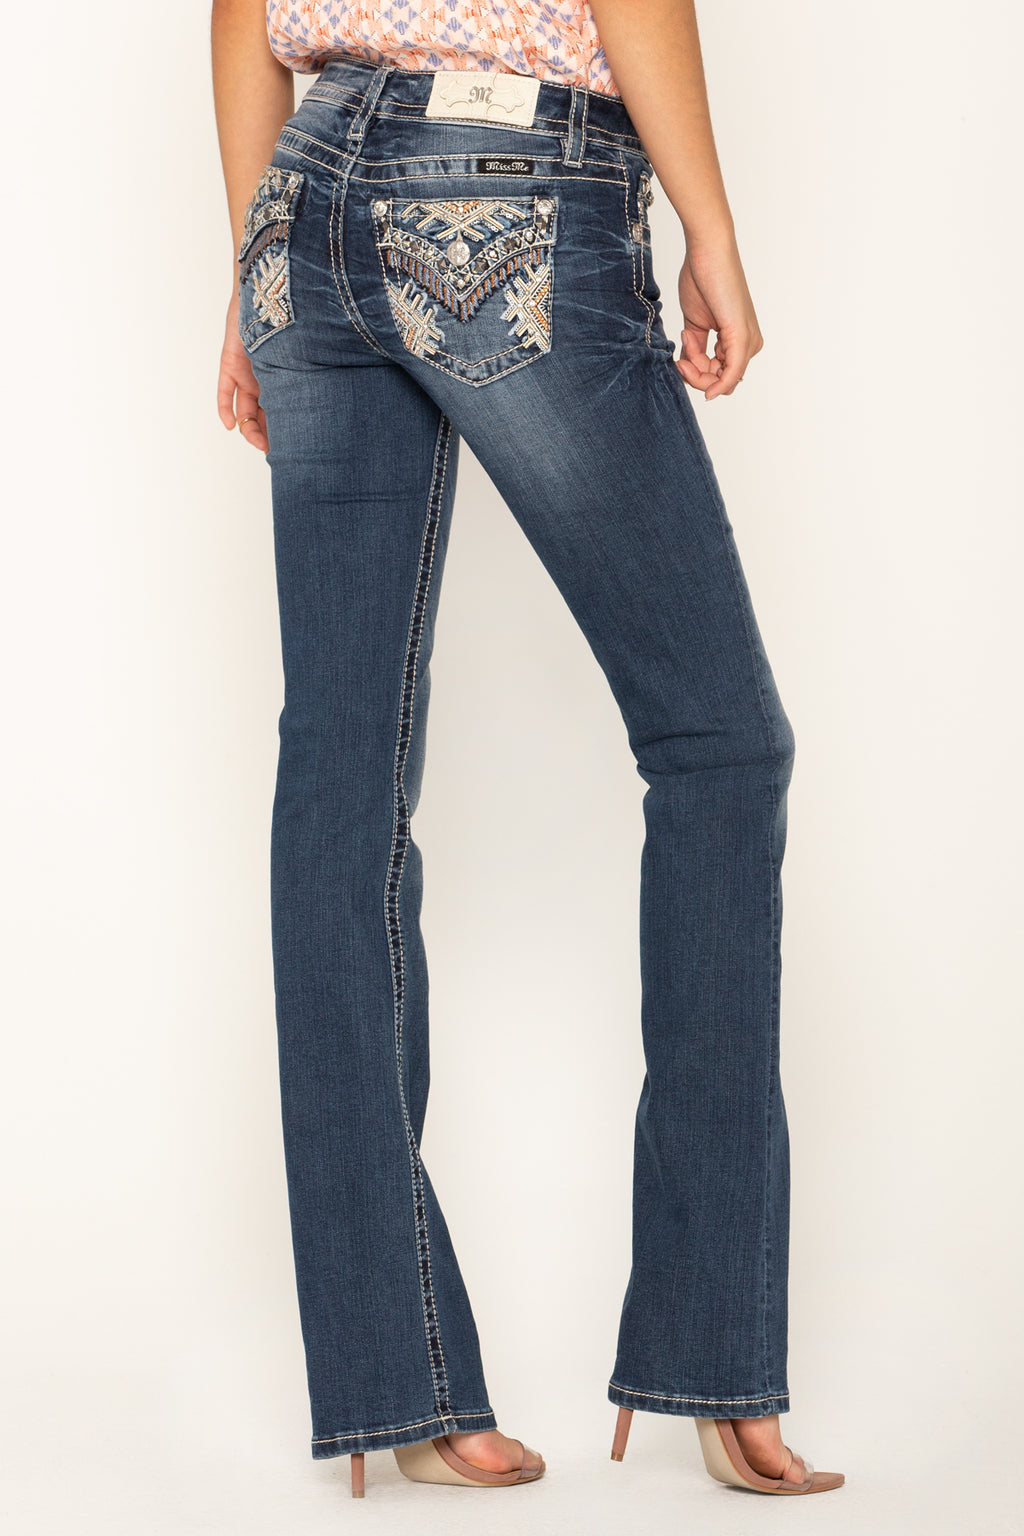 ff0f7257dca0 IT FACTOR BOOTCUT JEANS.  104.00. New